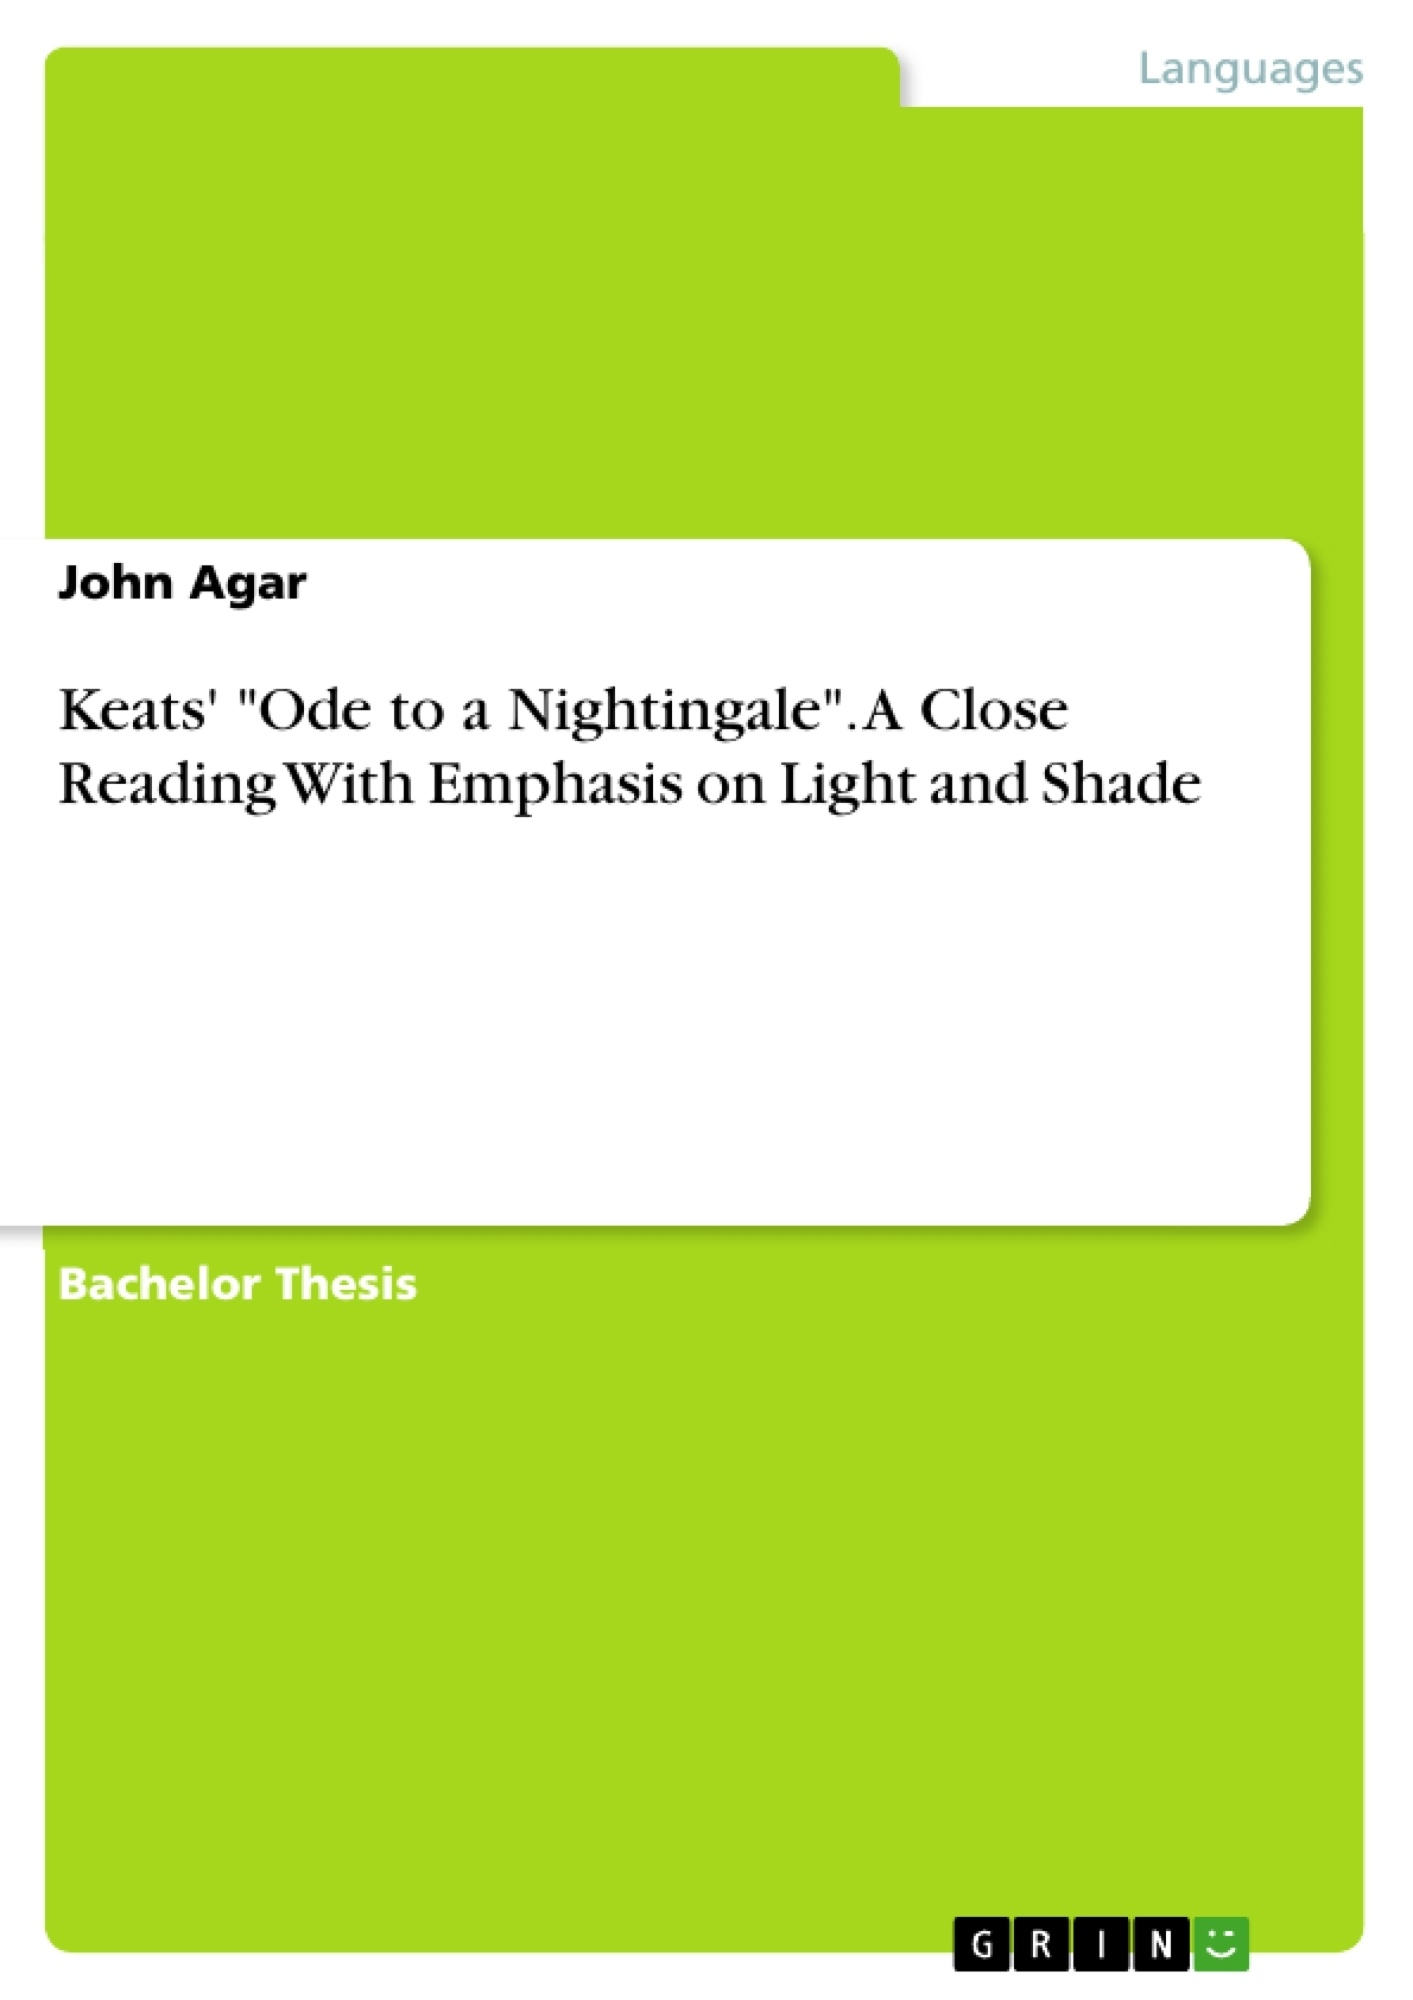 keats ode to a nightingale a close reading emphasis on keats ode to a nightingale a close reading emphasis on publish your master s thesis bachelor s thesis essay or term paper